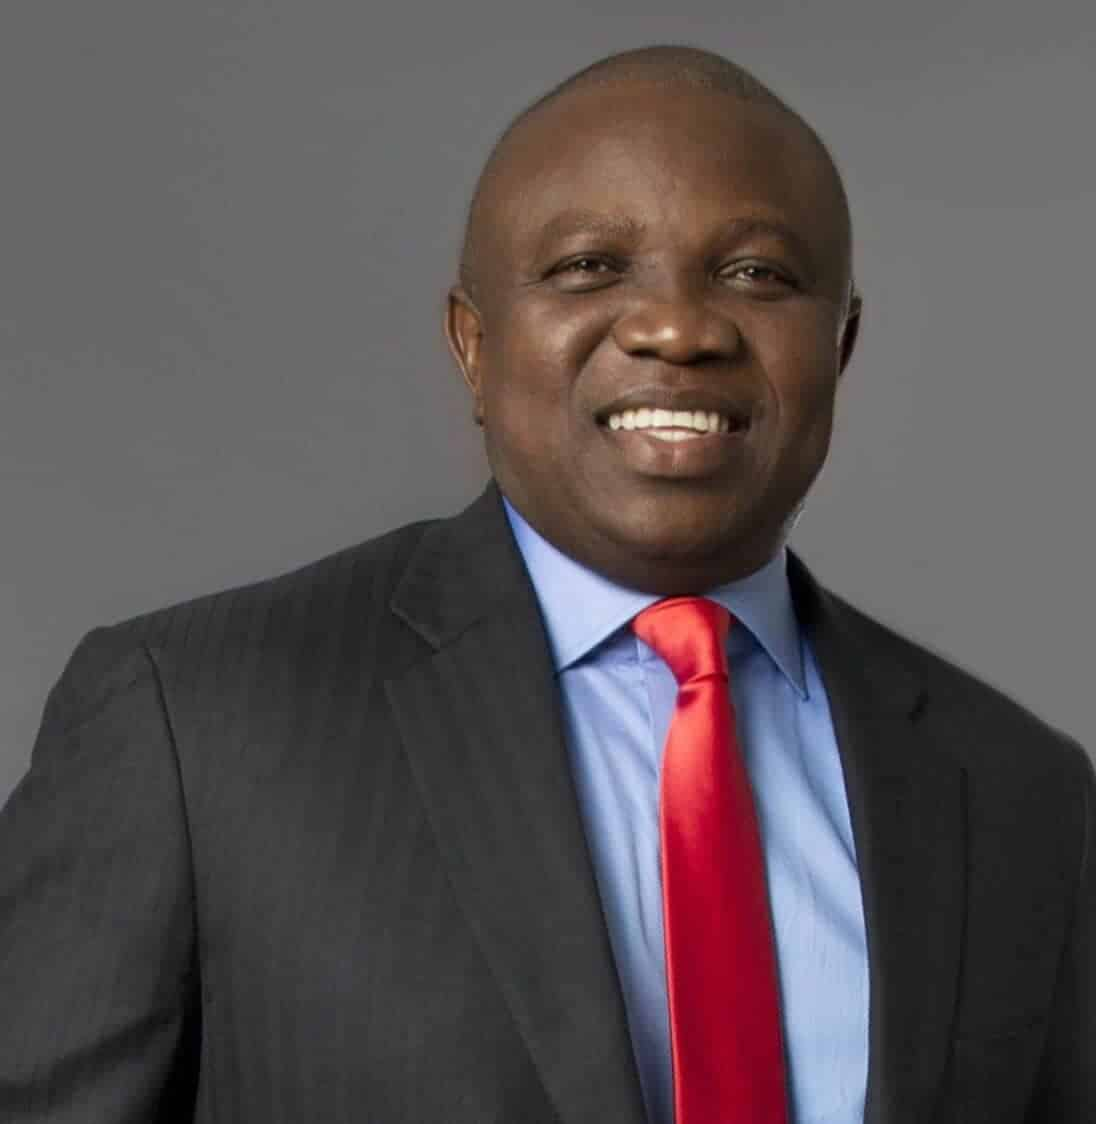 Photo of Ambode receives his APC party ID card to enable him vote in primaries